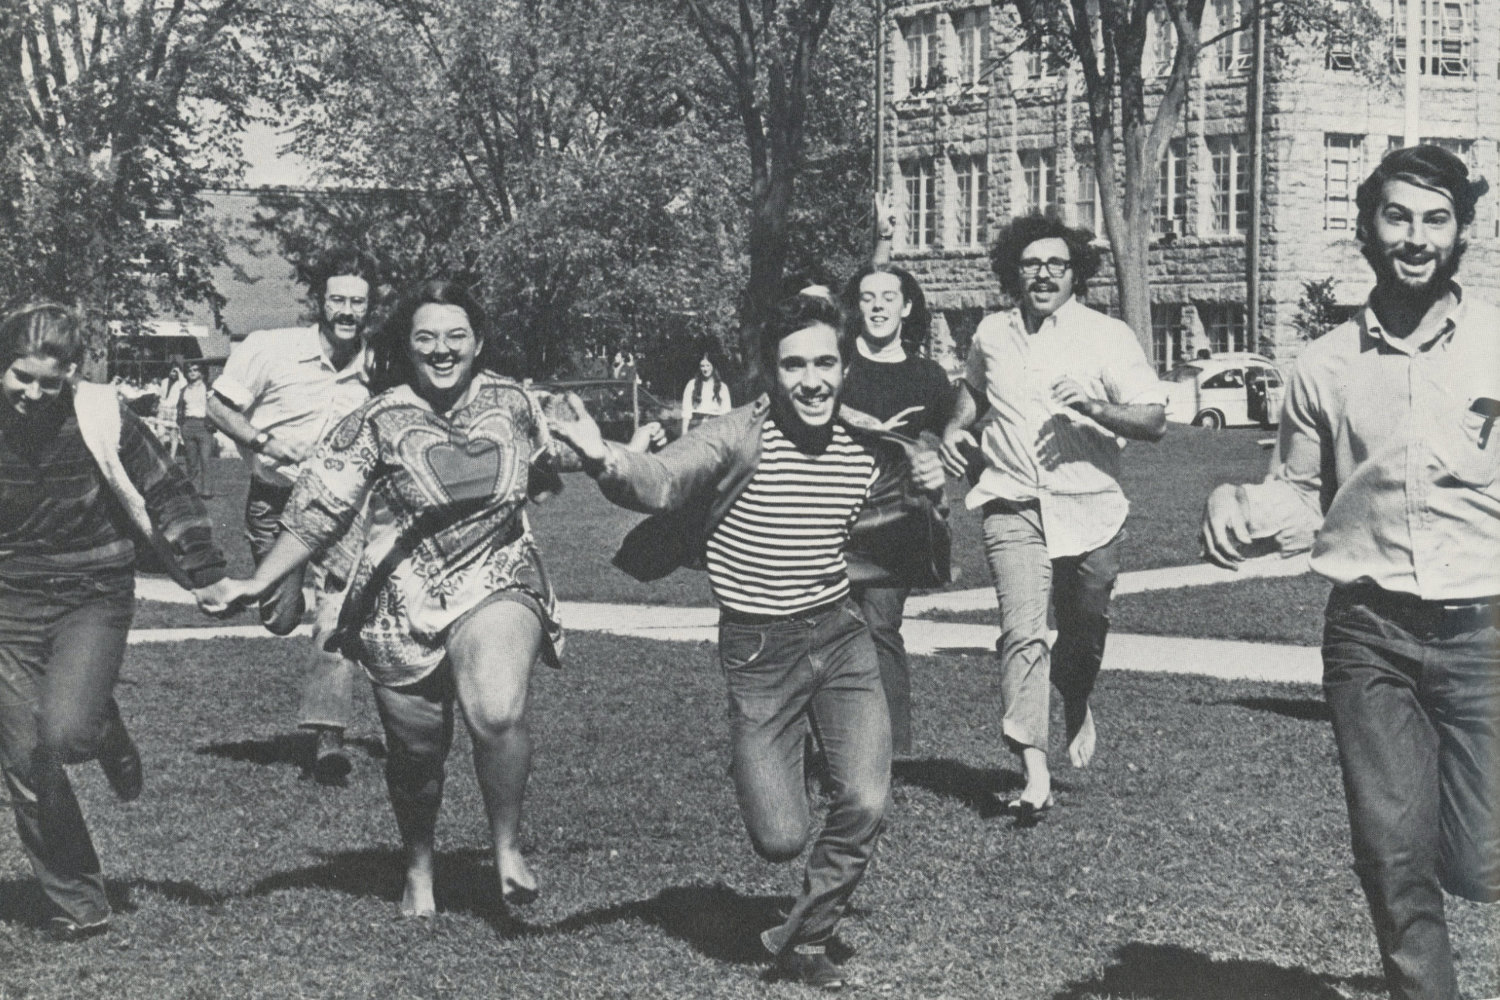 Students run across the quad in a picture from the 1970 yearbook